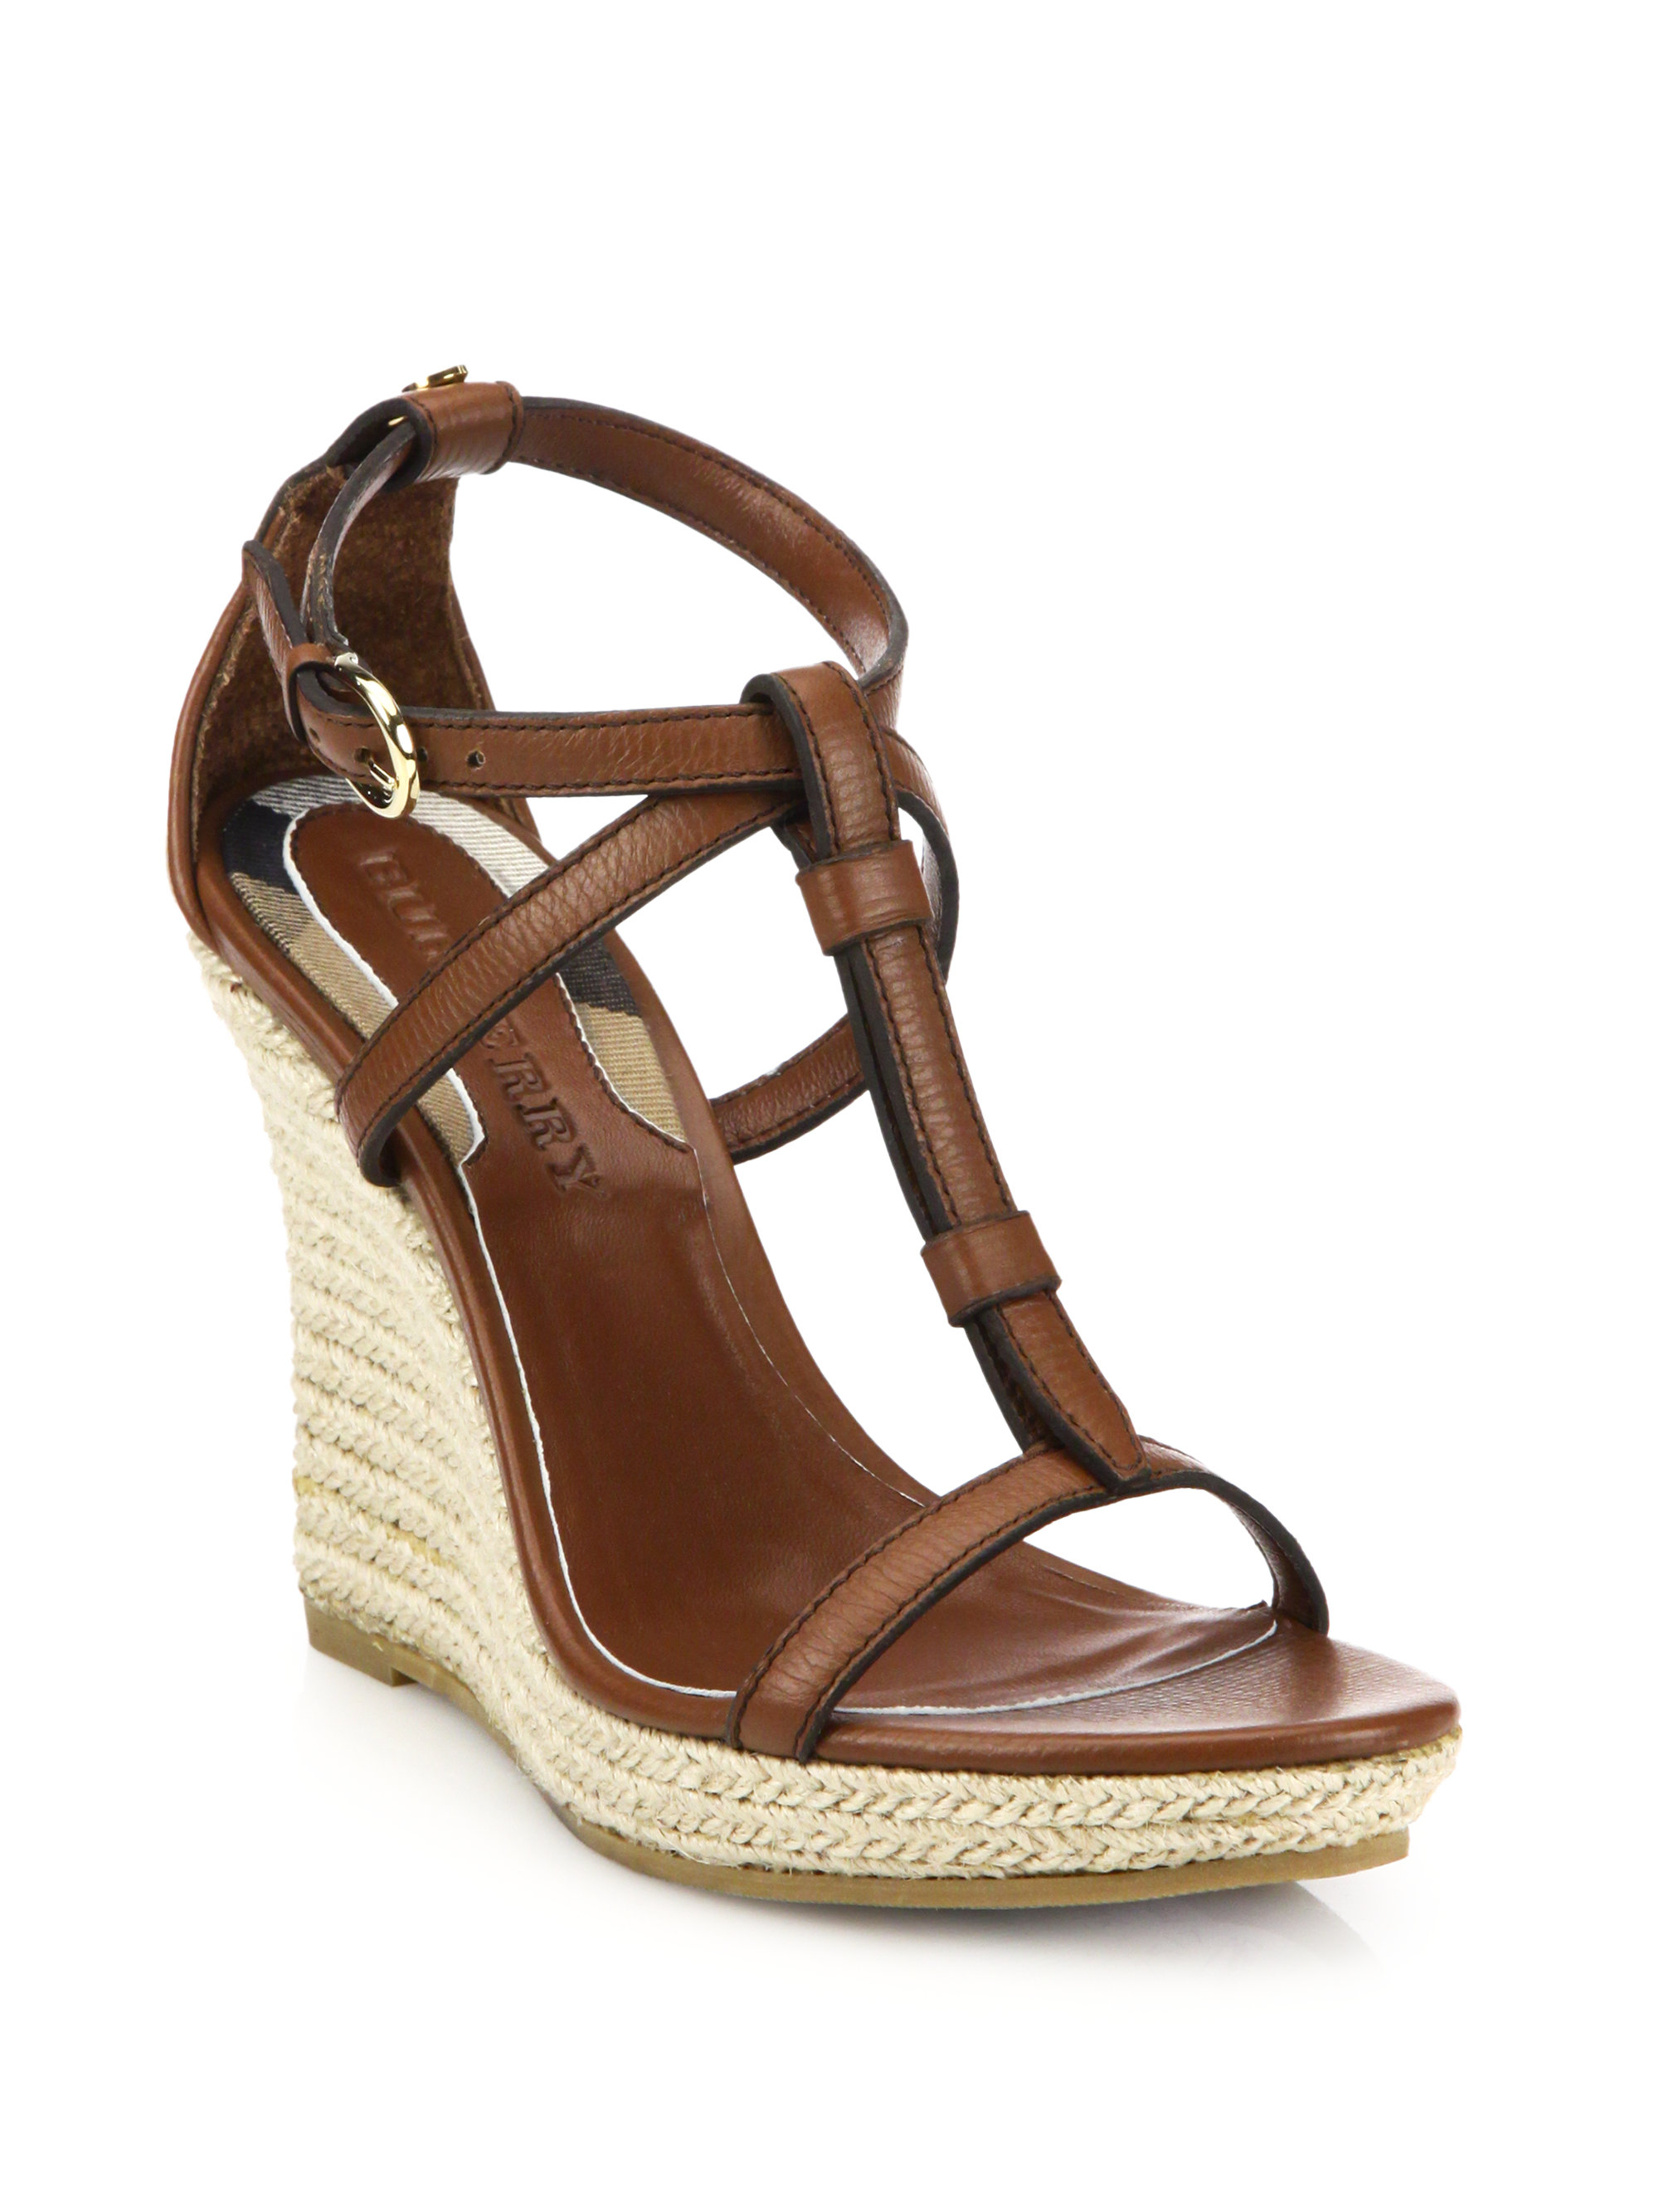 Burberry Wedland Leather Wedge Espadrilles In Brown Lyst